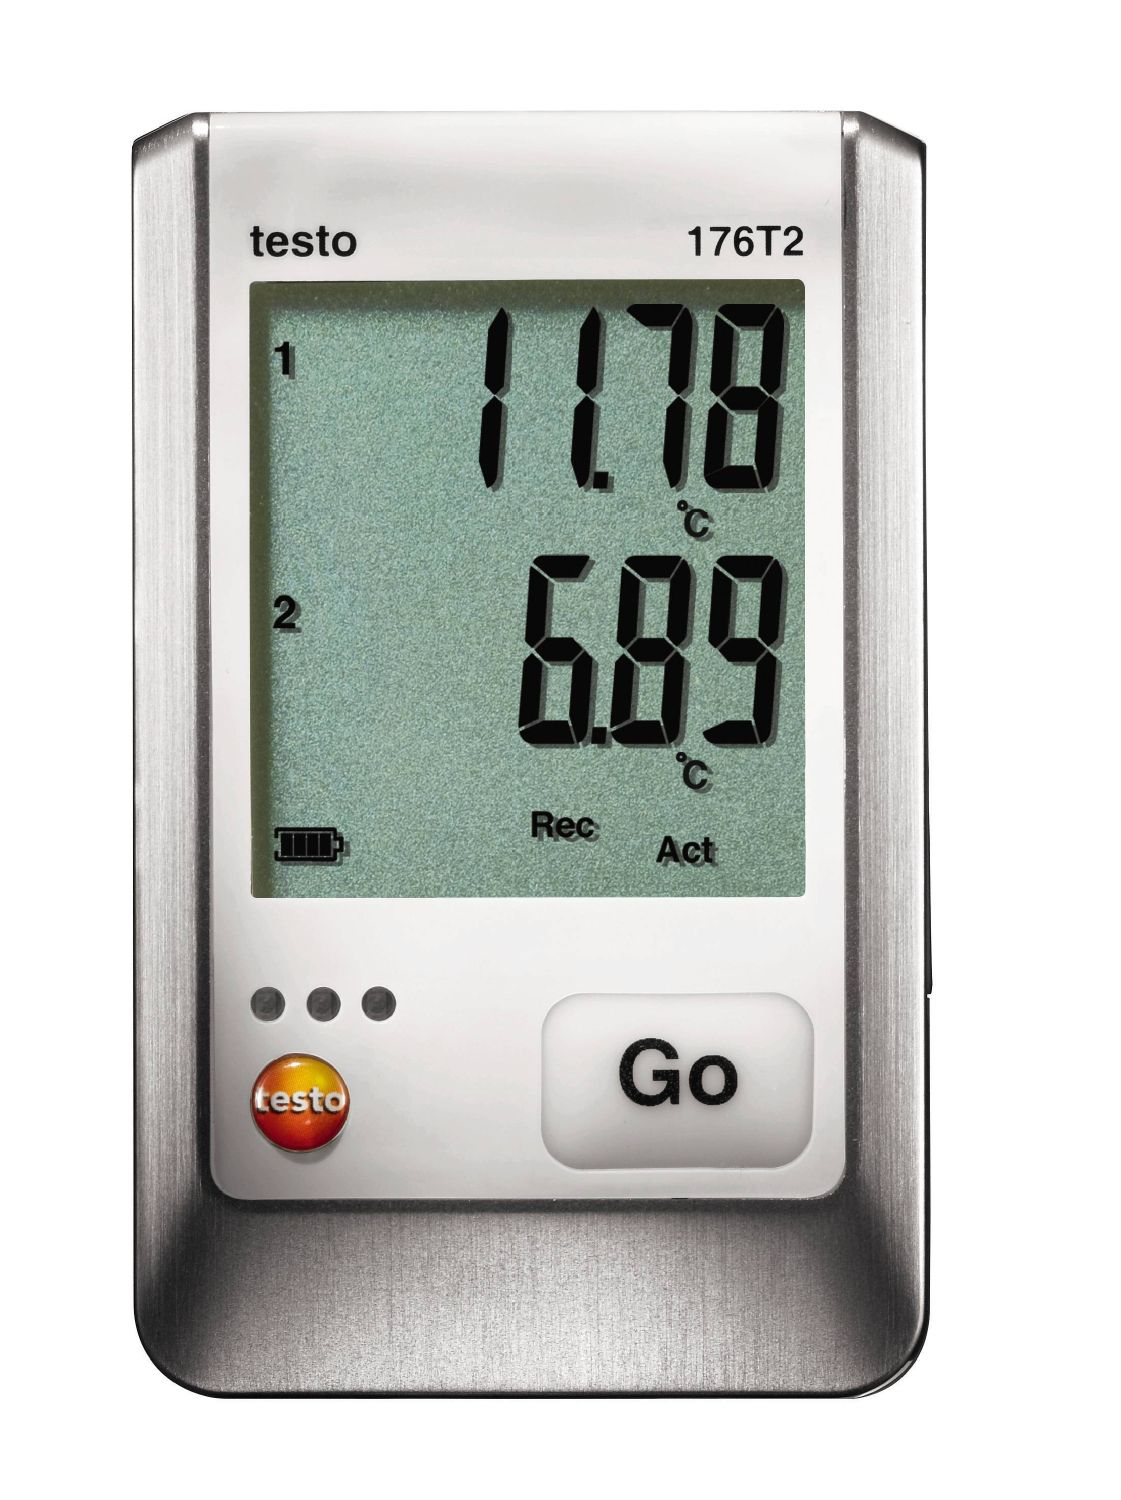 testo-176T2-instrument-temperature-001870.jpg